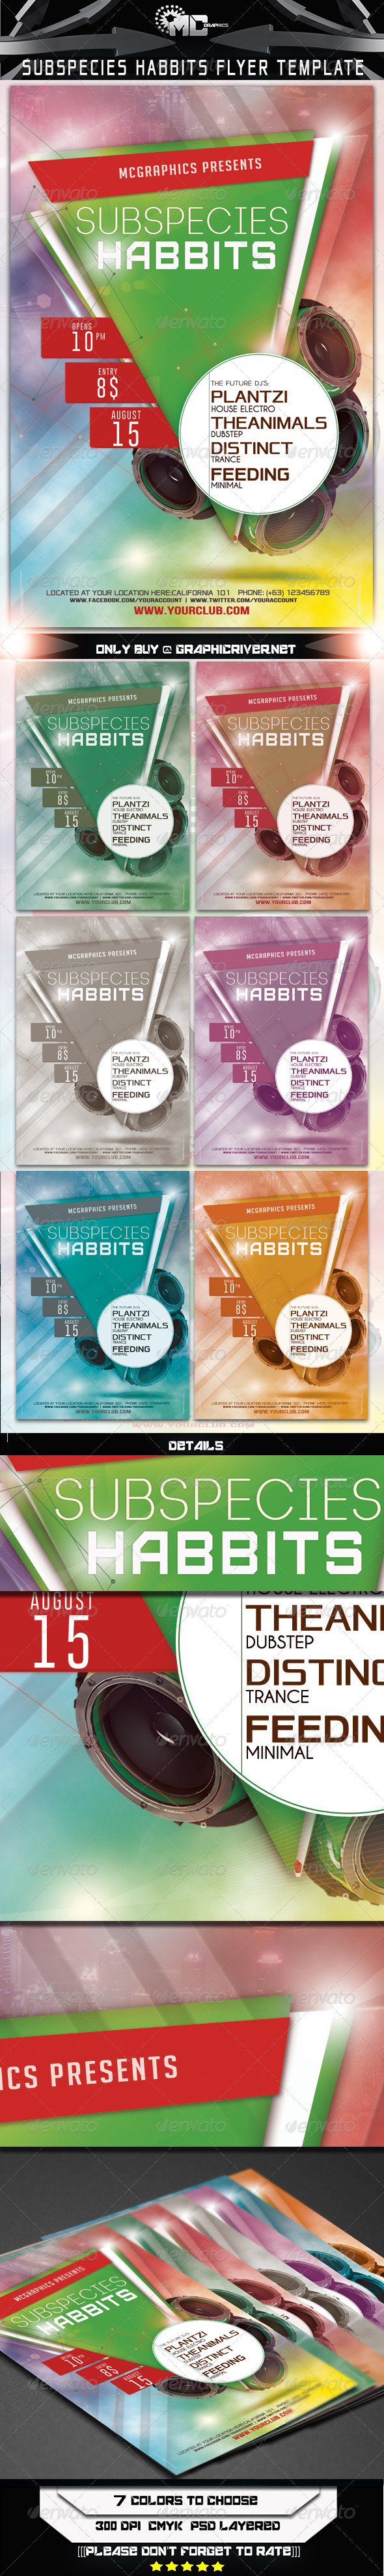 GraphicRiver Subspecies Habbits Flyer Template 6893473